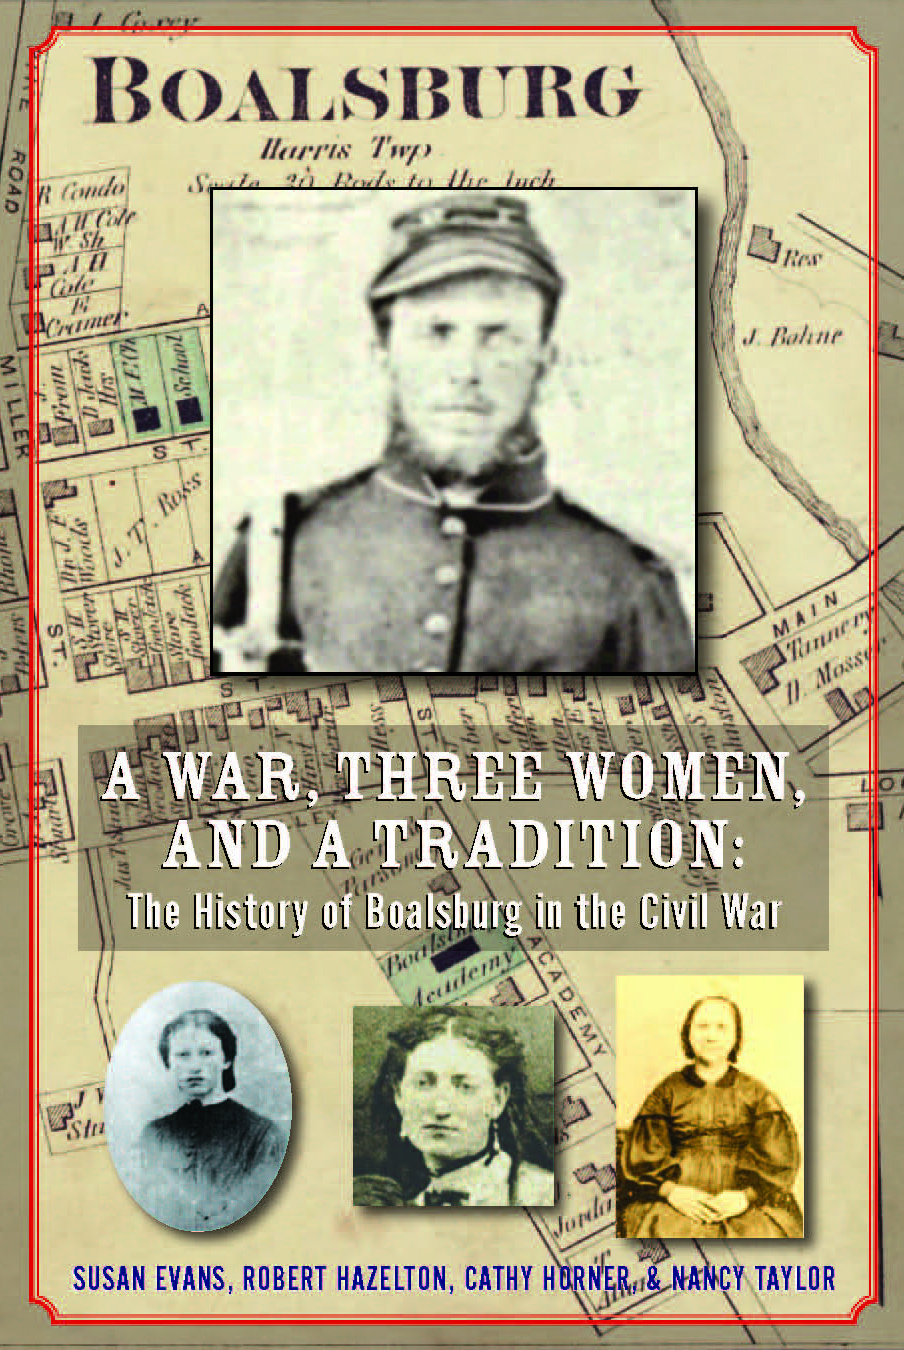 Book cover of A War, Three Women and a Tradition: The History of Boalsburg in the Civil War